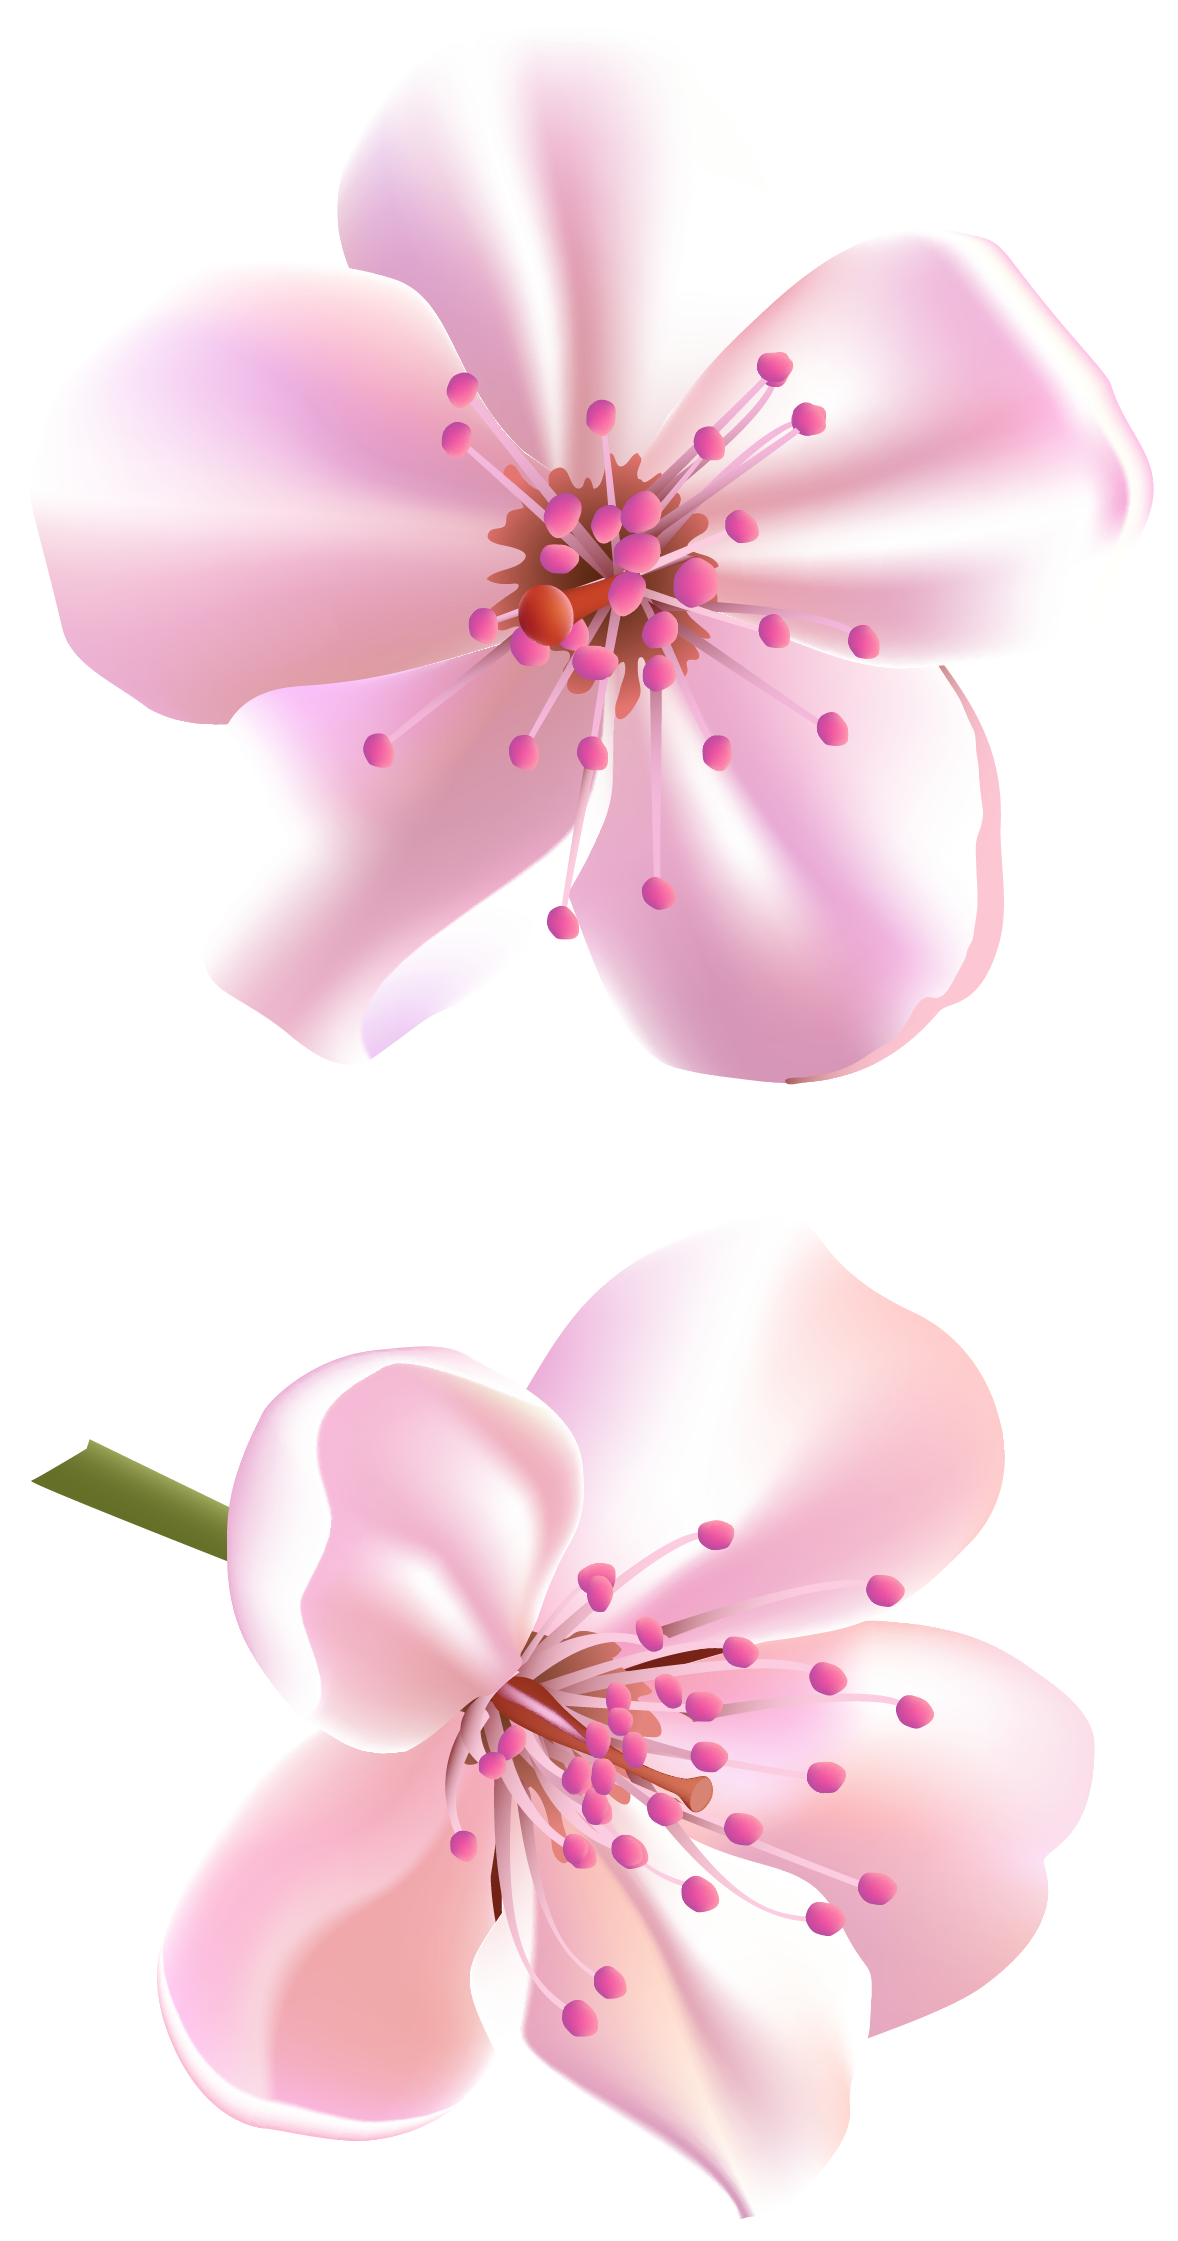 Cherry blossom flower png. Pin by eynasoo on